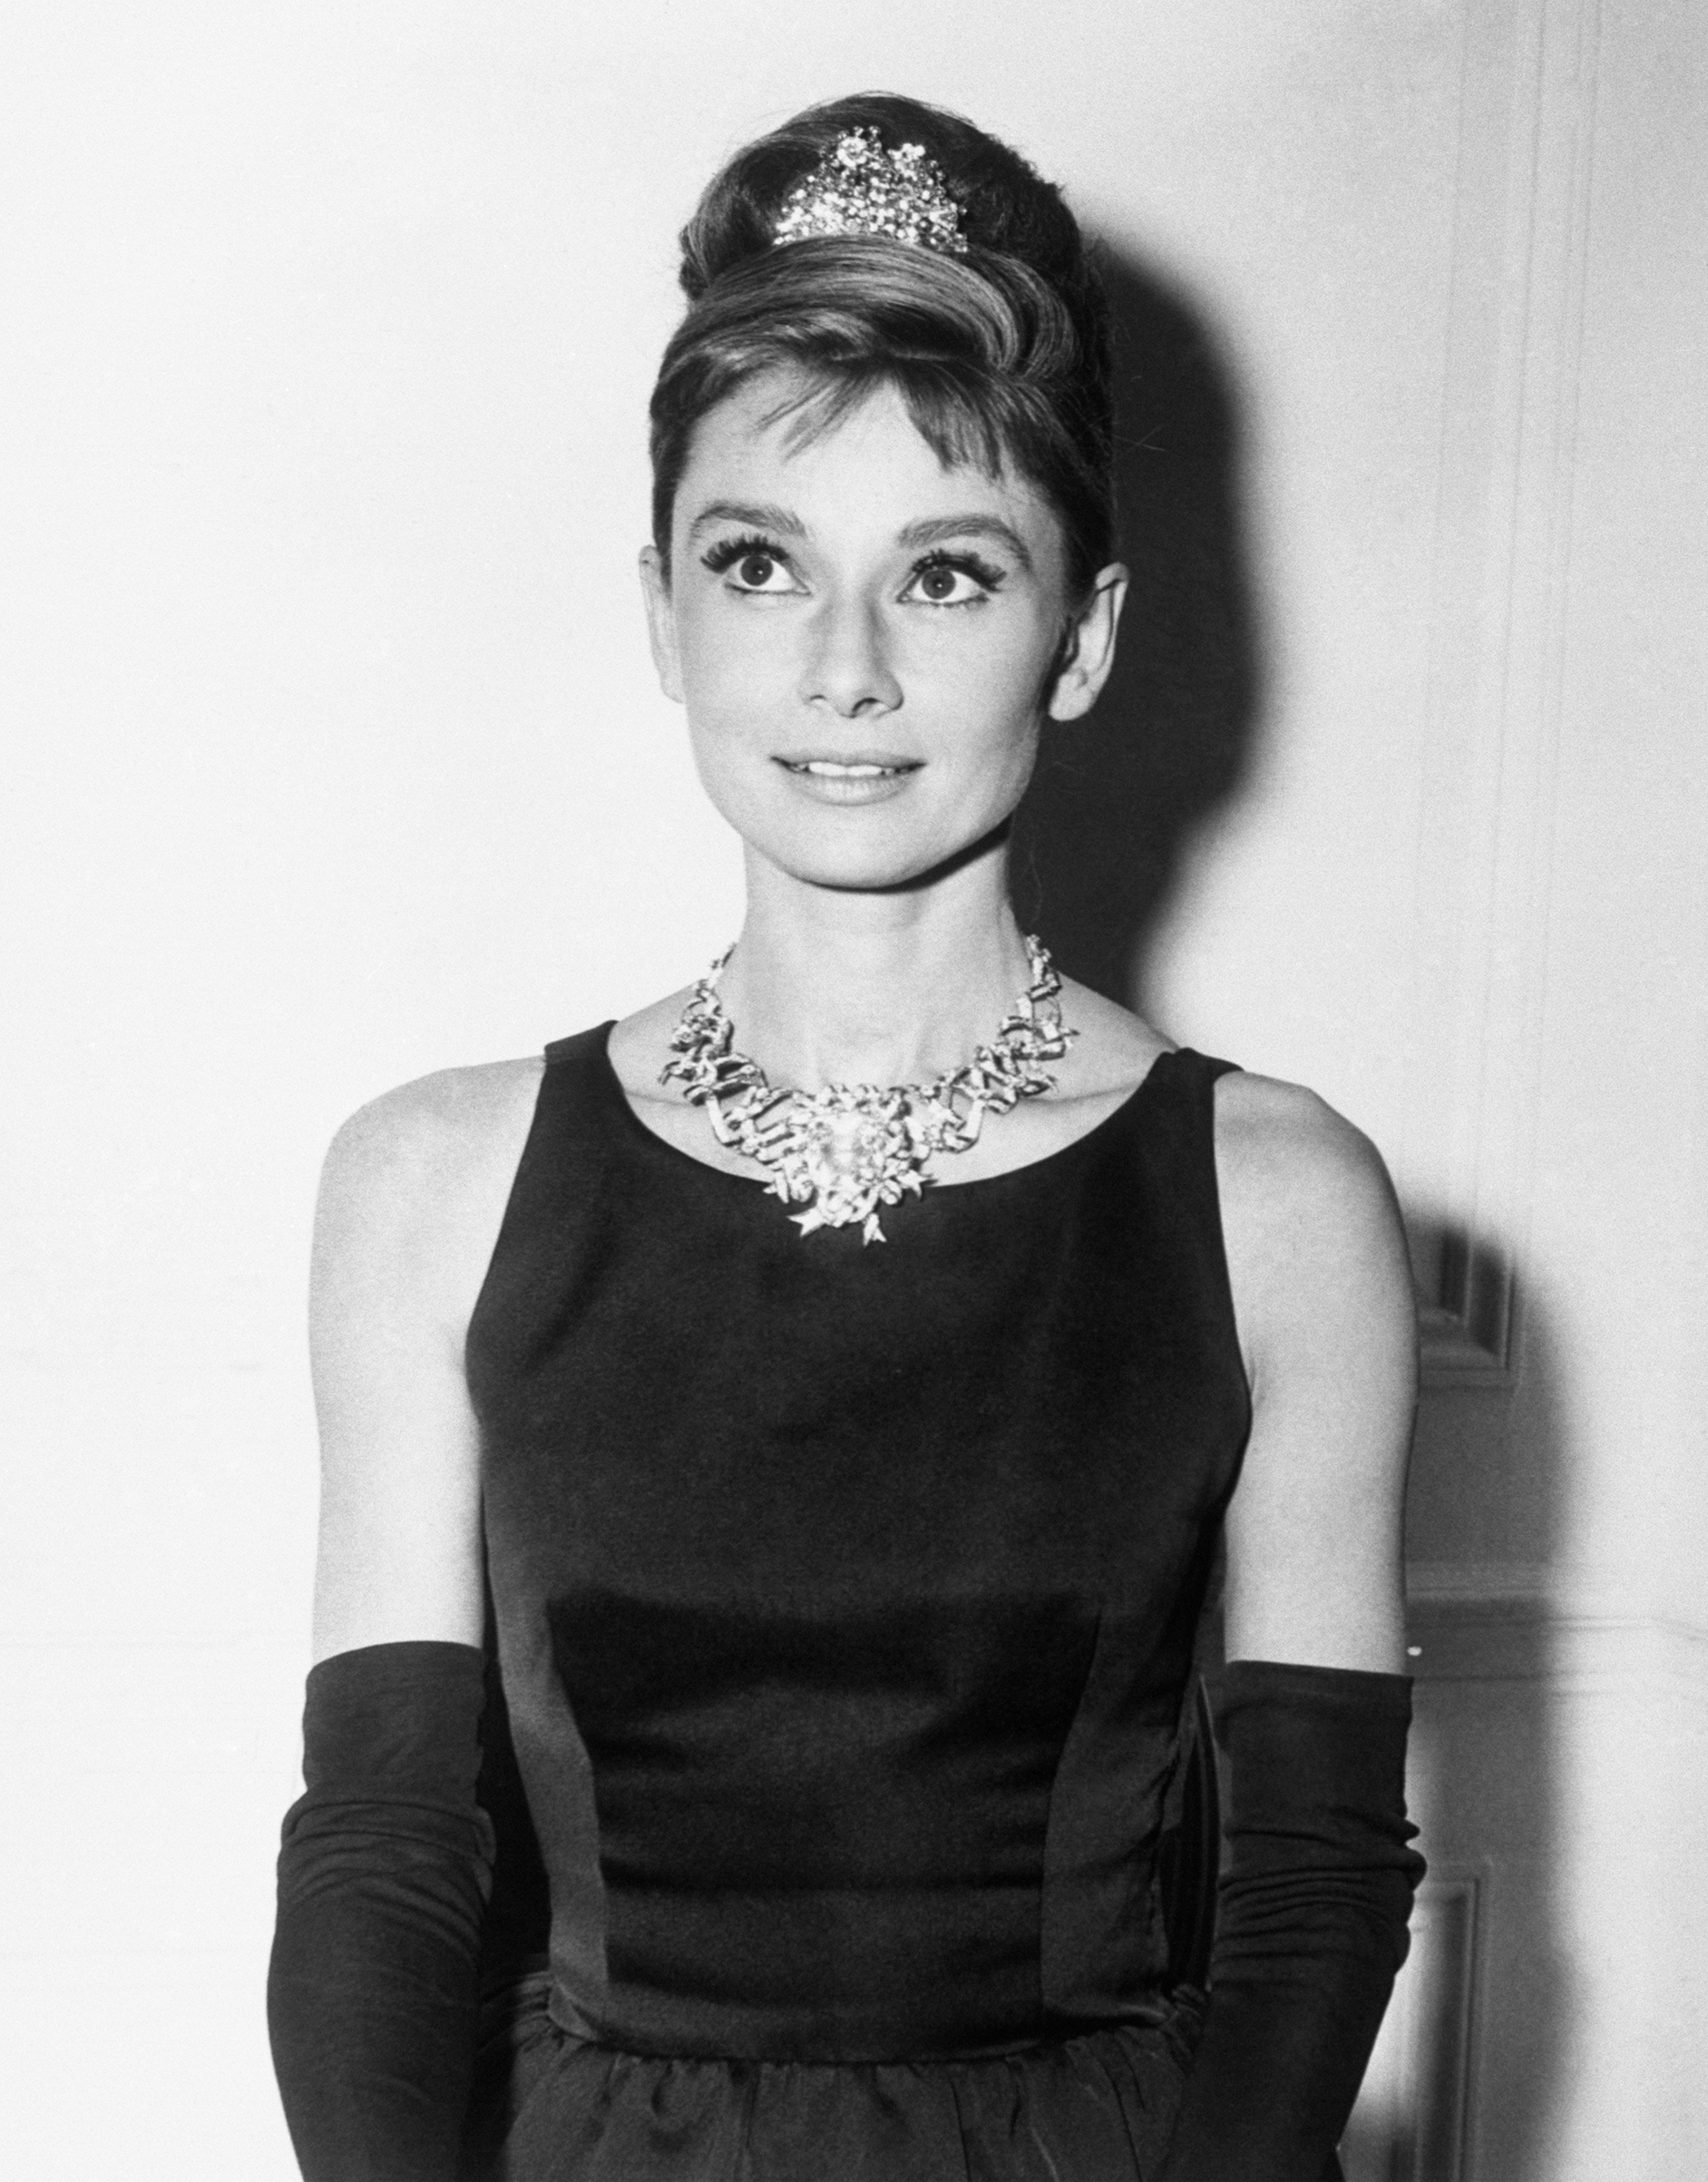 Audrey Hepburn, about to begin filming for Breakfast At Tiffany's, wears one of the store's most expensive diamond necklaces.